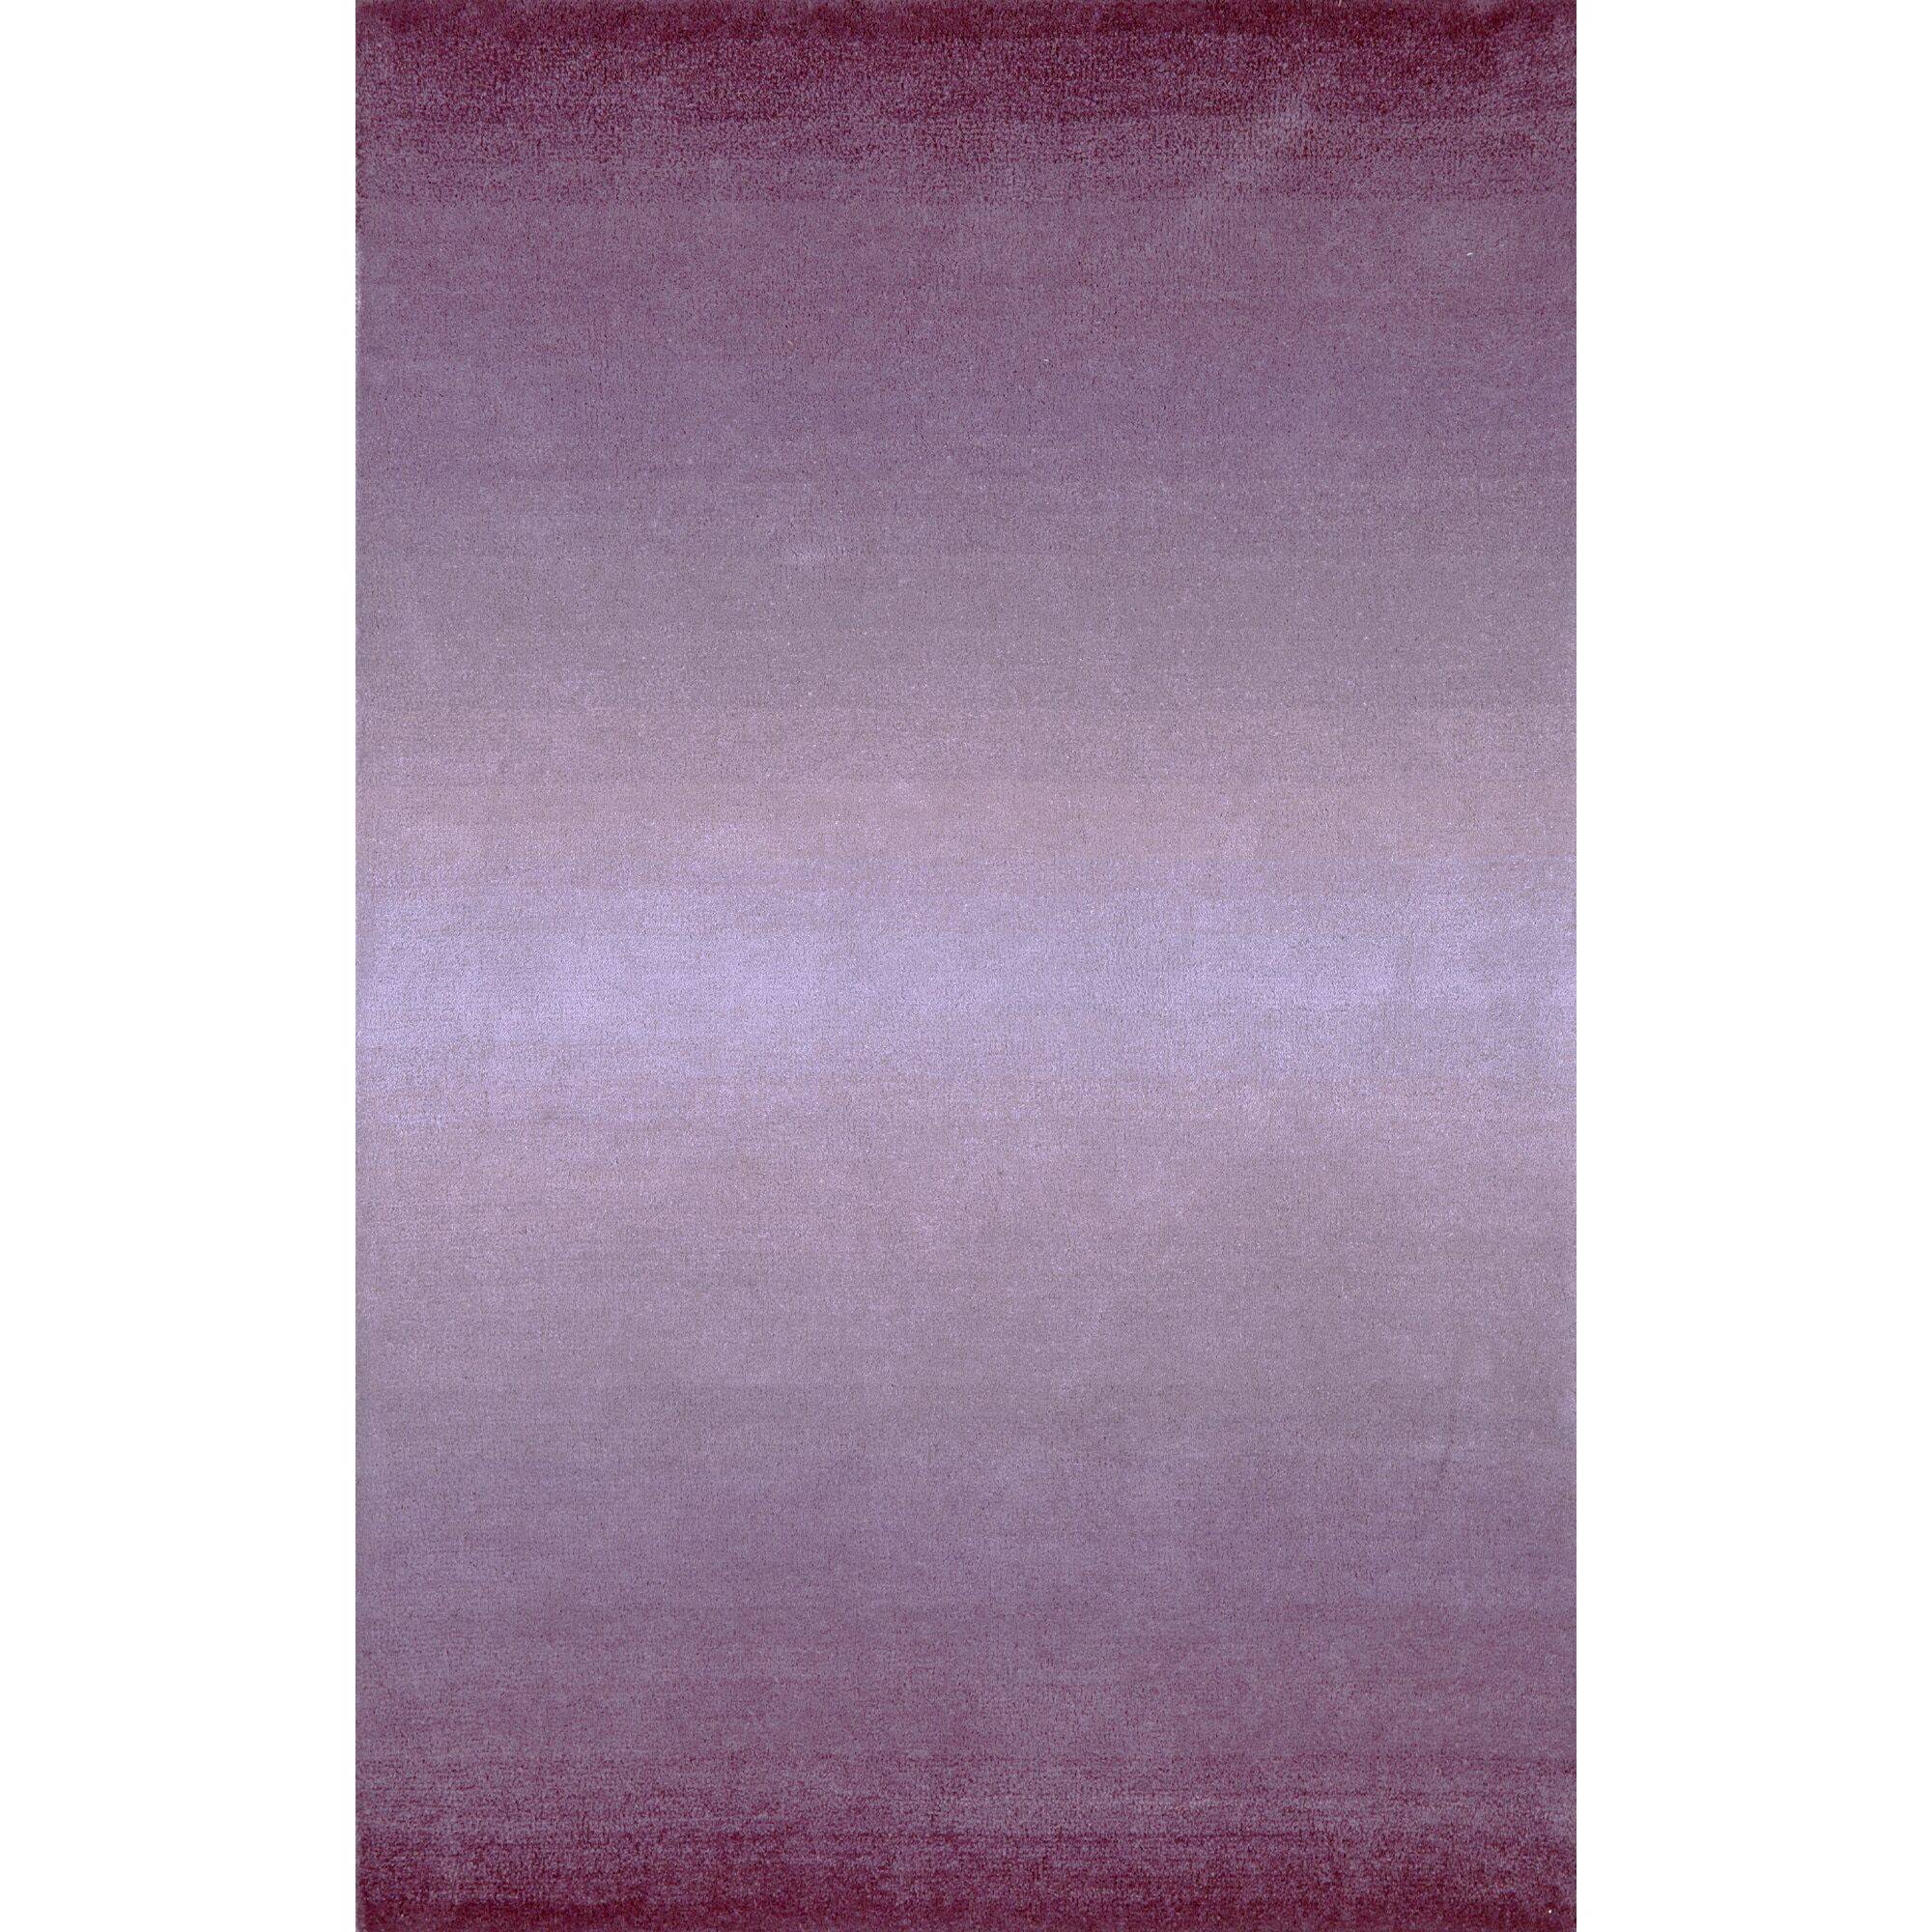 Belding Hand-Tufted Wool Purple Area Rug Rug Size: Rectangle 3'6